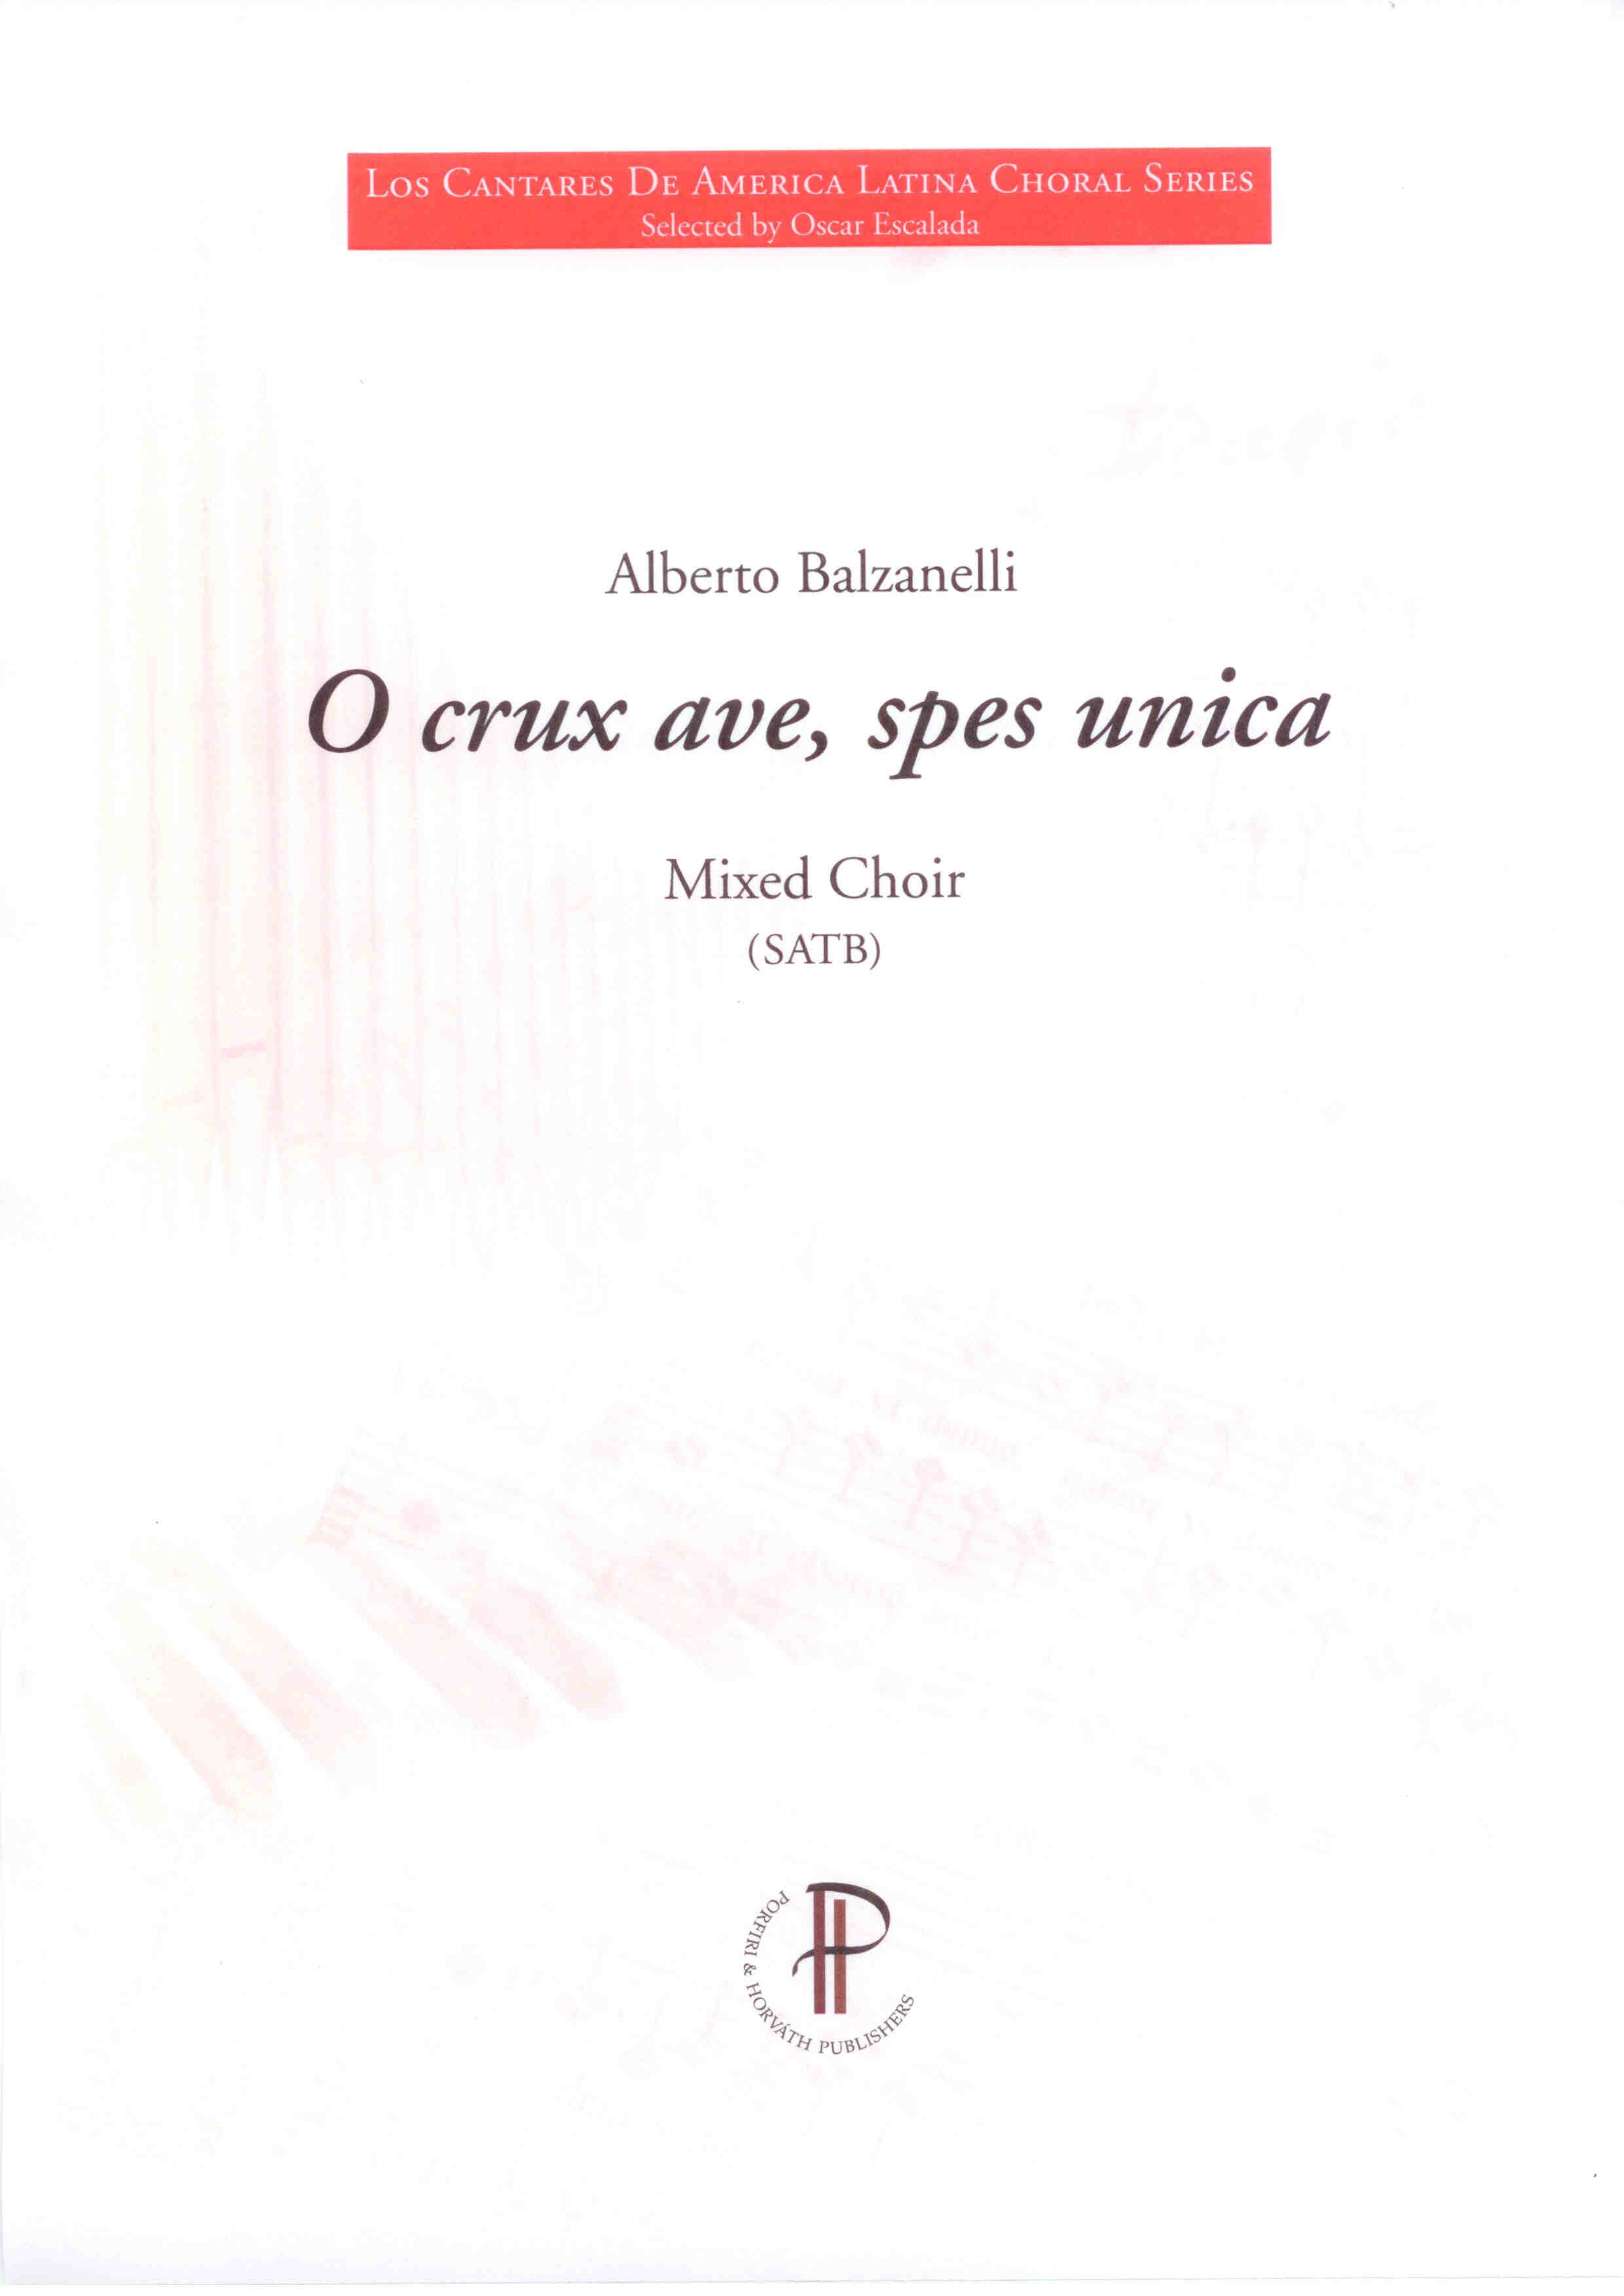 O Crux Ave, Spes Unica - Show sample score